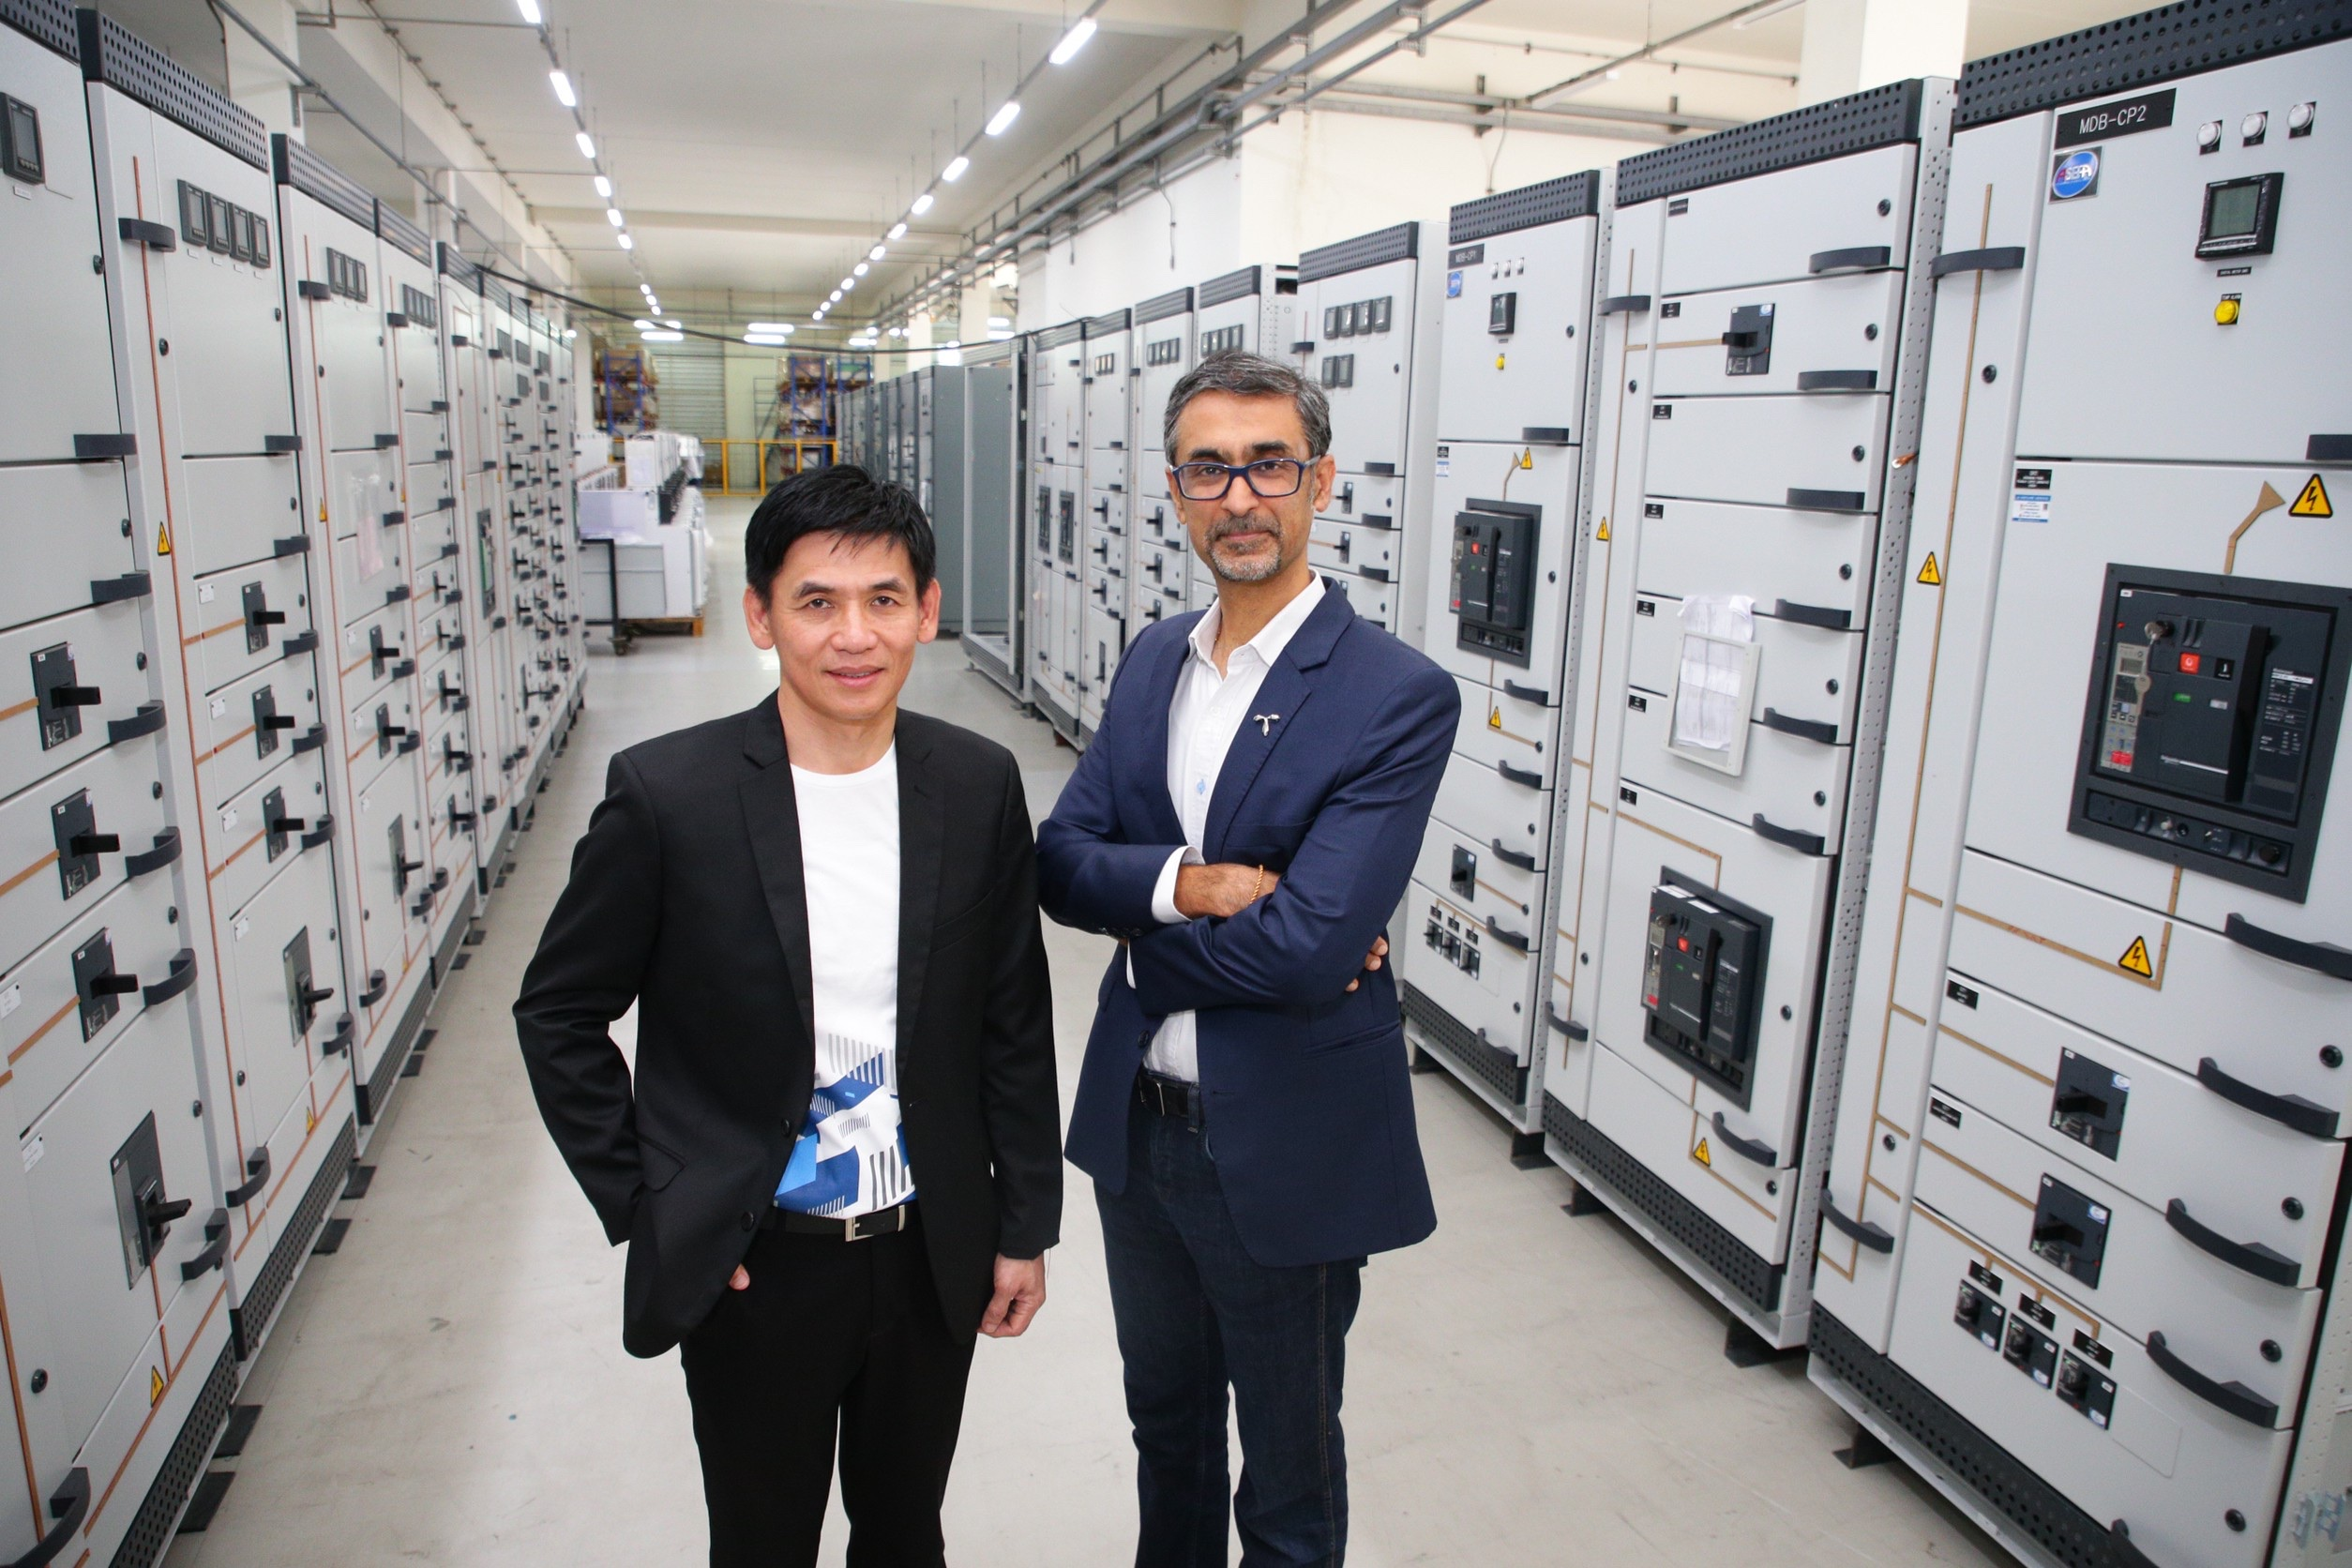 Smart Energy Management: dtac's IoT solution for uninterrupted power